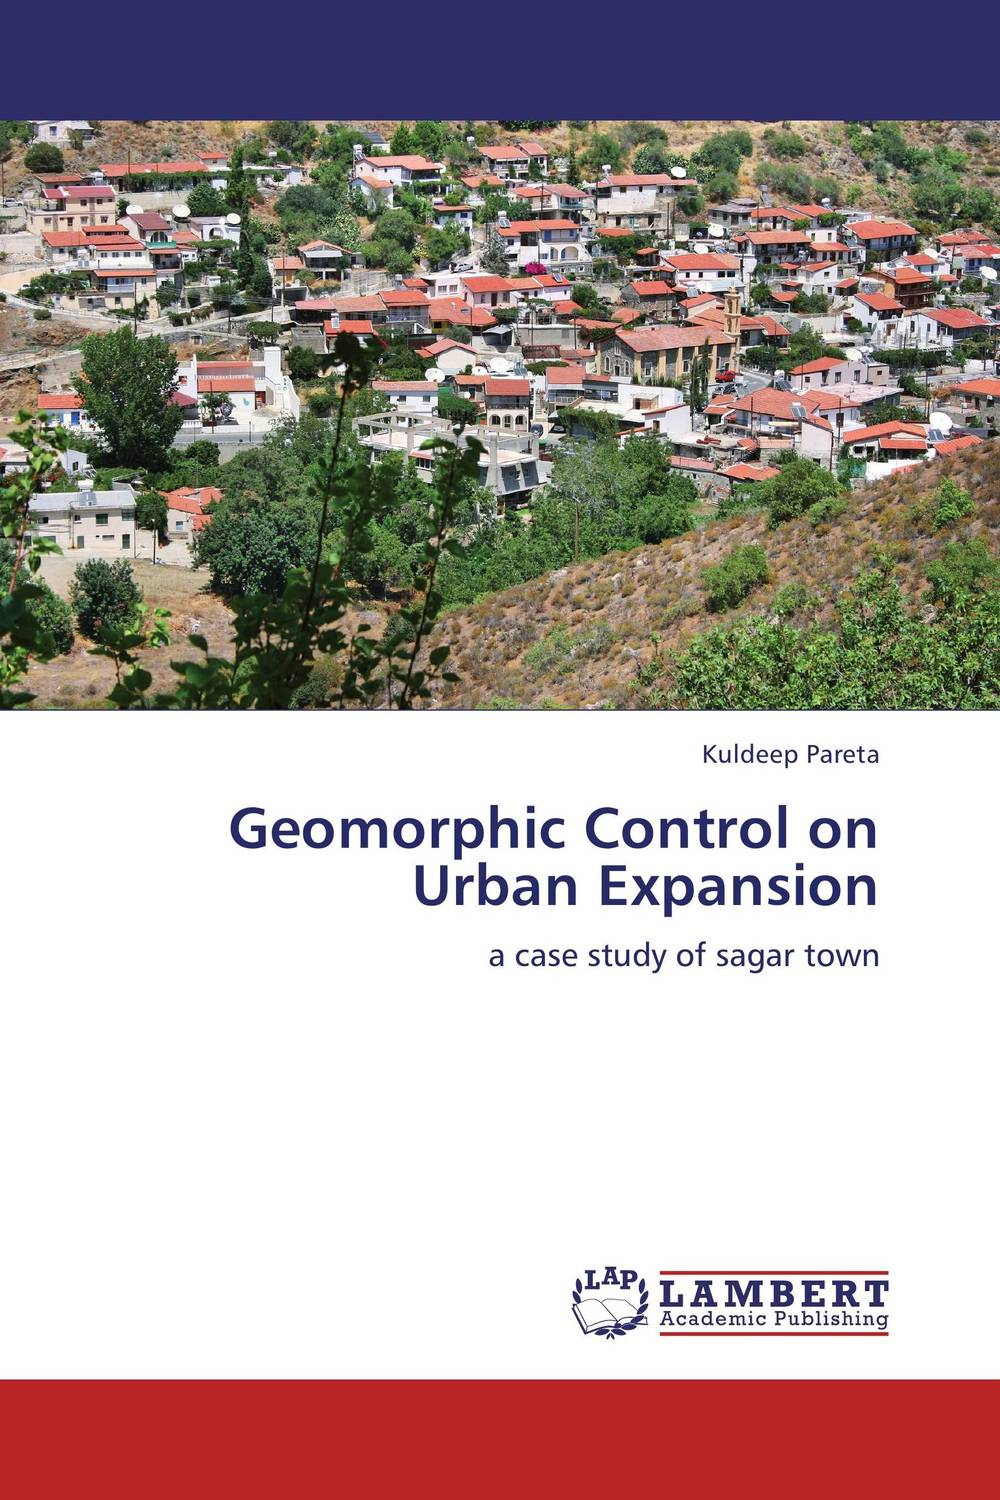 Geomorphic Control on Urban Expansion geomorphic control on urban expansion